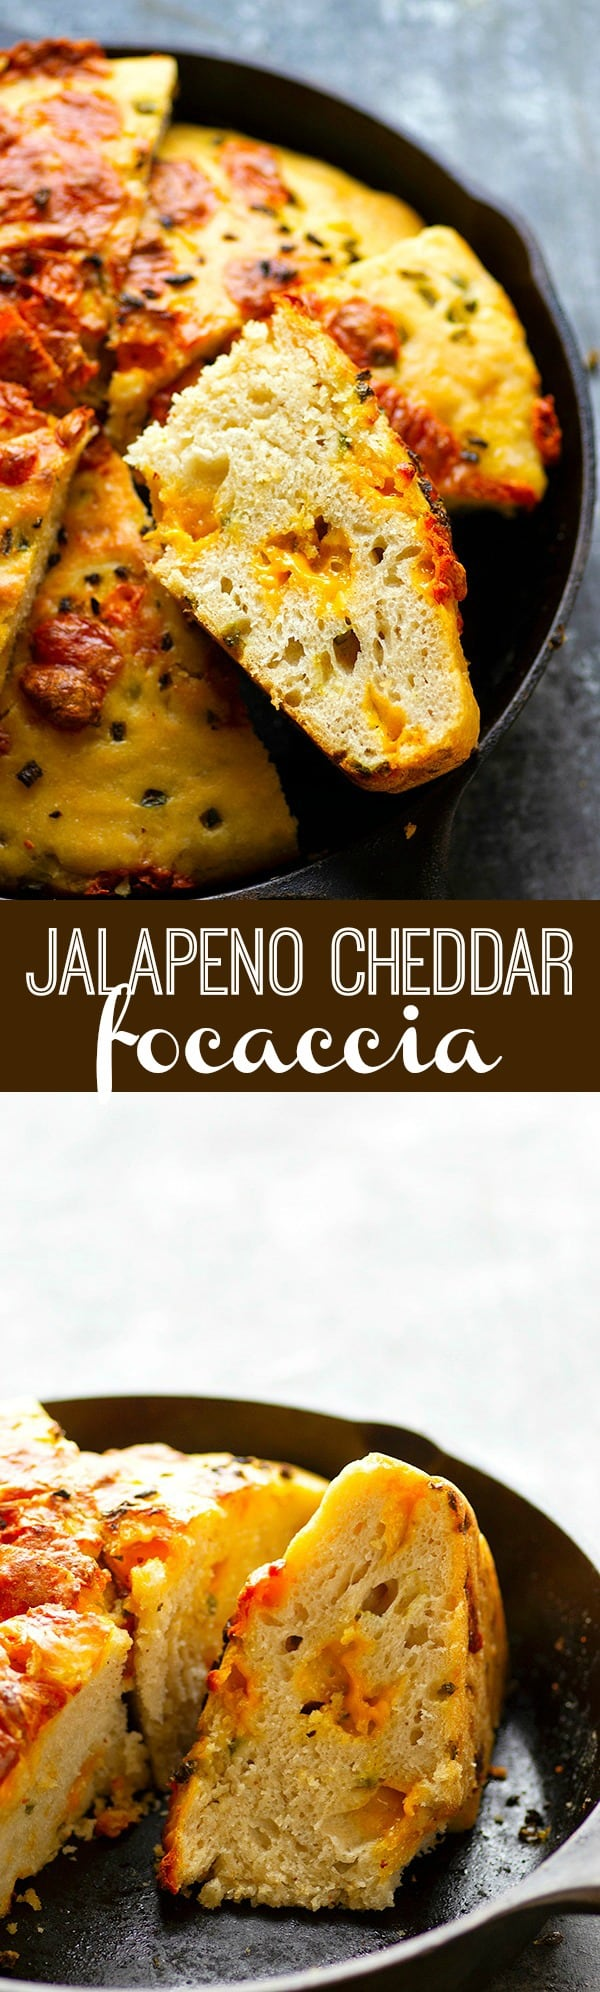 Jalapeno Cheddar Focaccia - Gooey pockets of sharp cheddar cheese and spicy jalapeno bits are the most INSANE duo in this incredibly soft and flavorful jalapeno cheddar focaccia bread!